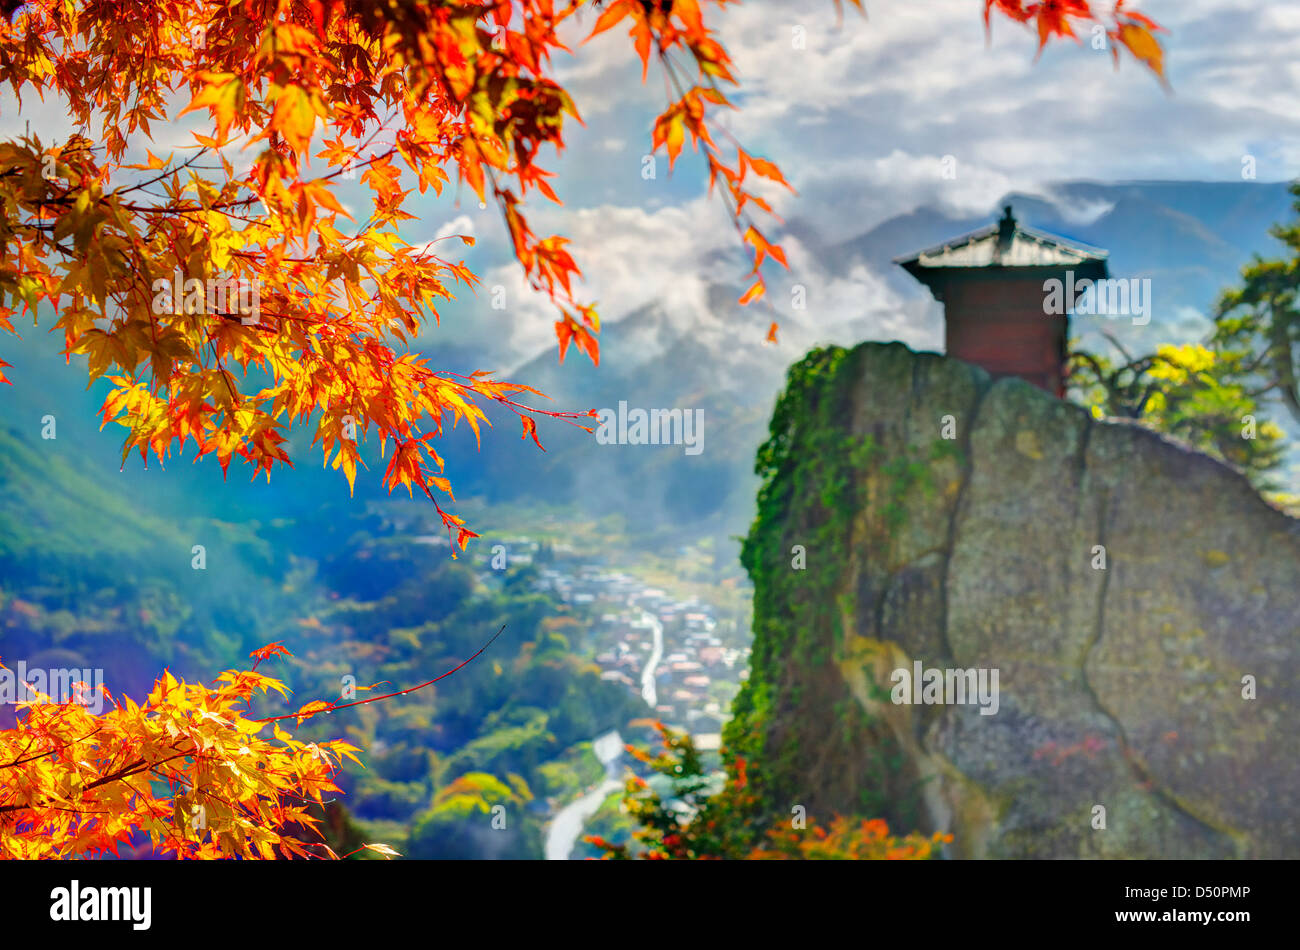 Yamadera is a mountain temple. selective focus on foreground fall leaves. - Stock Image